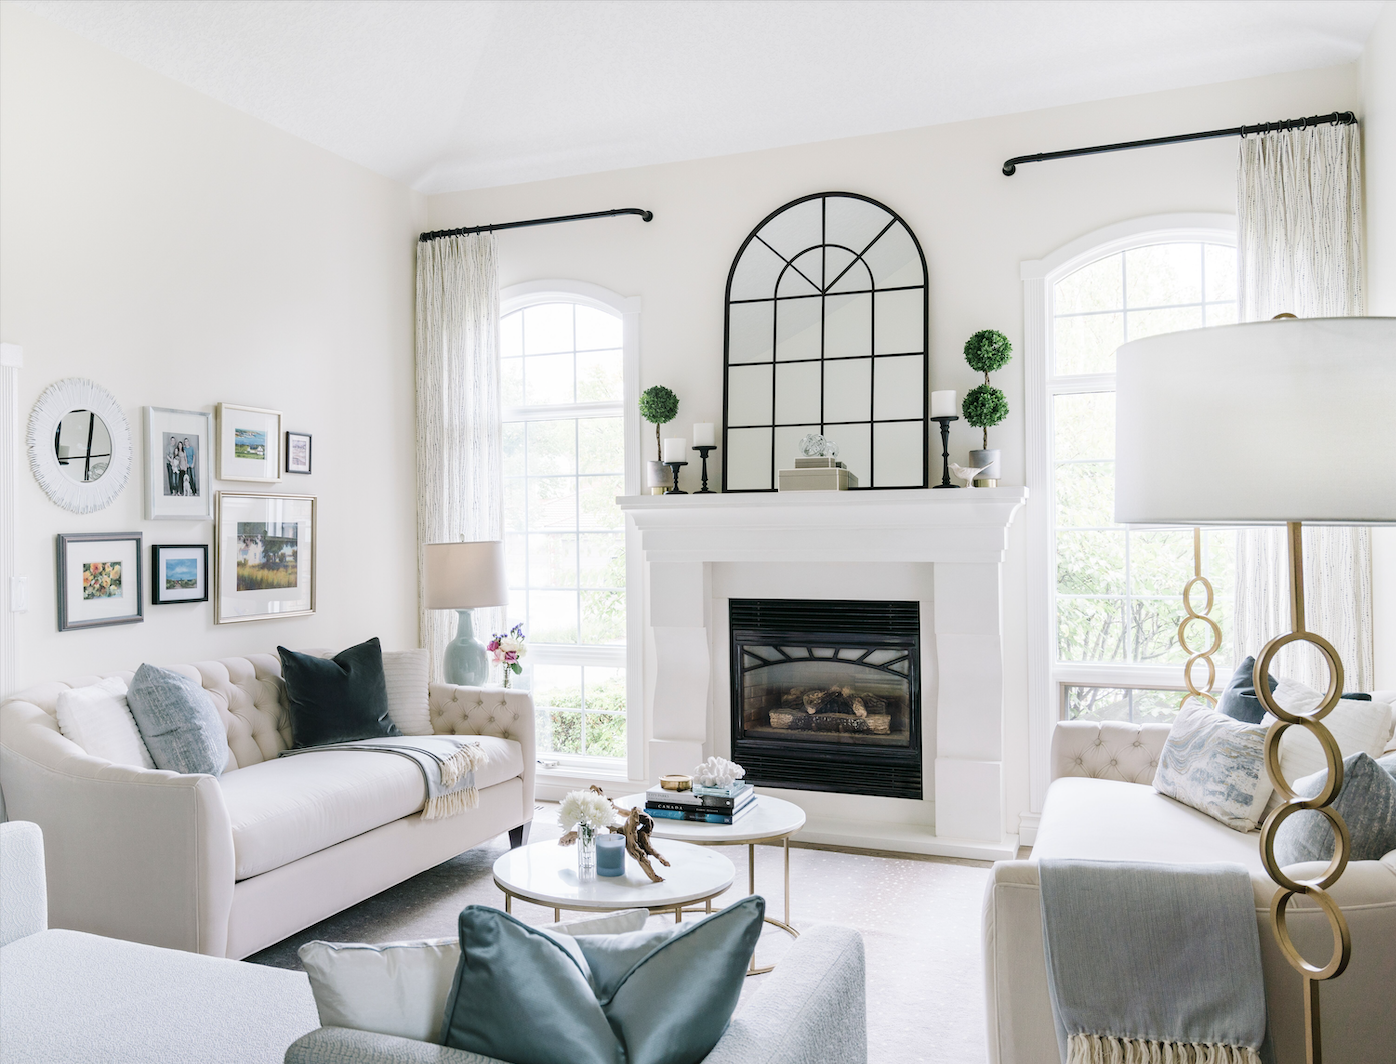 elegant gallery wall travel finds how to display at home leanne bunnell interiors